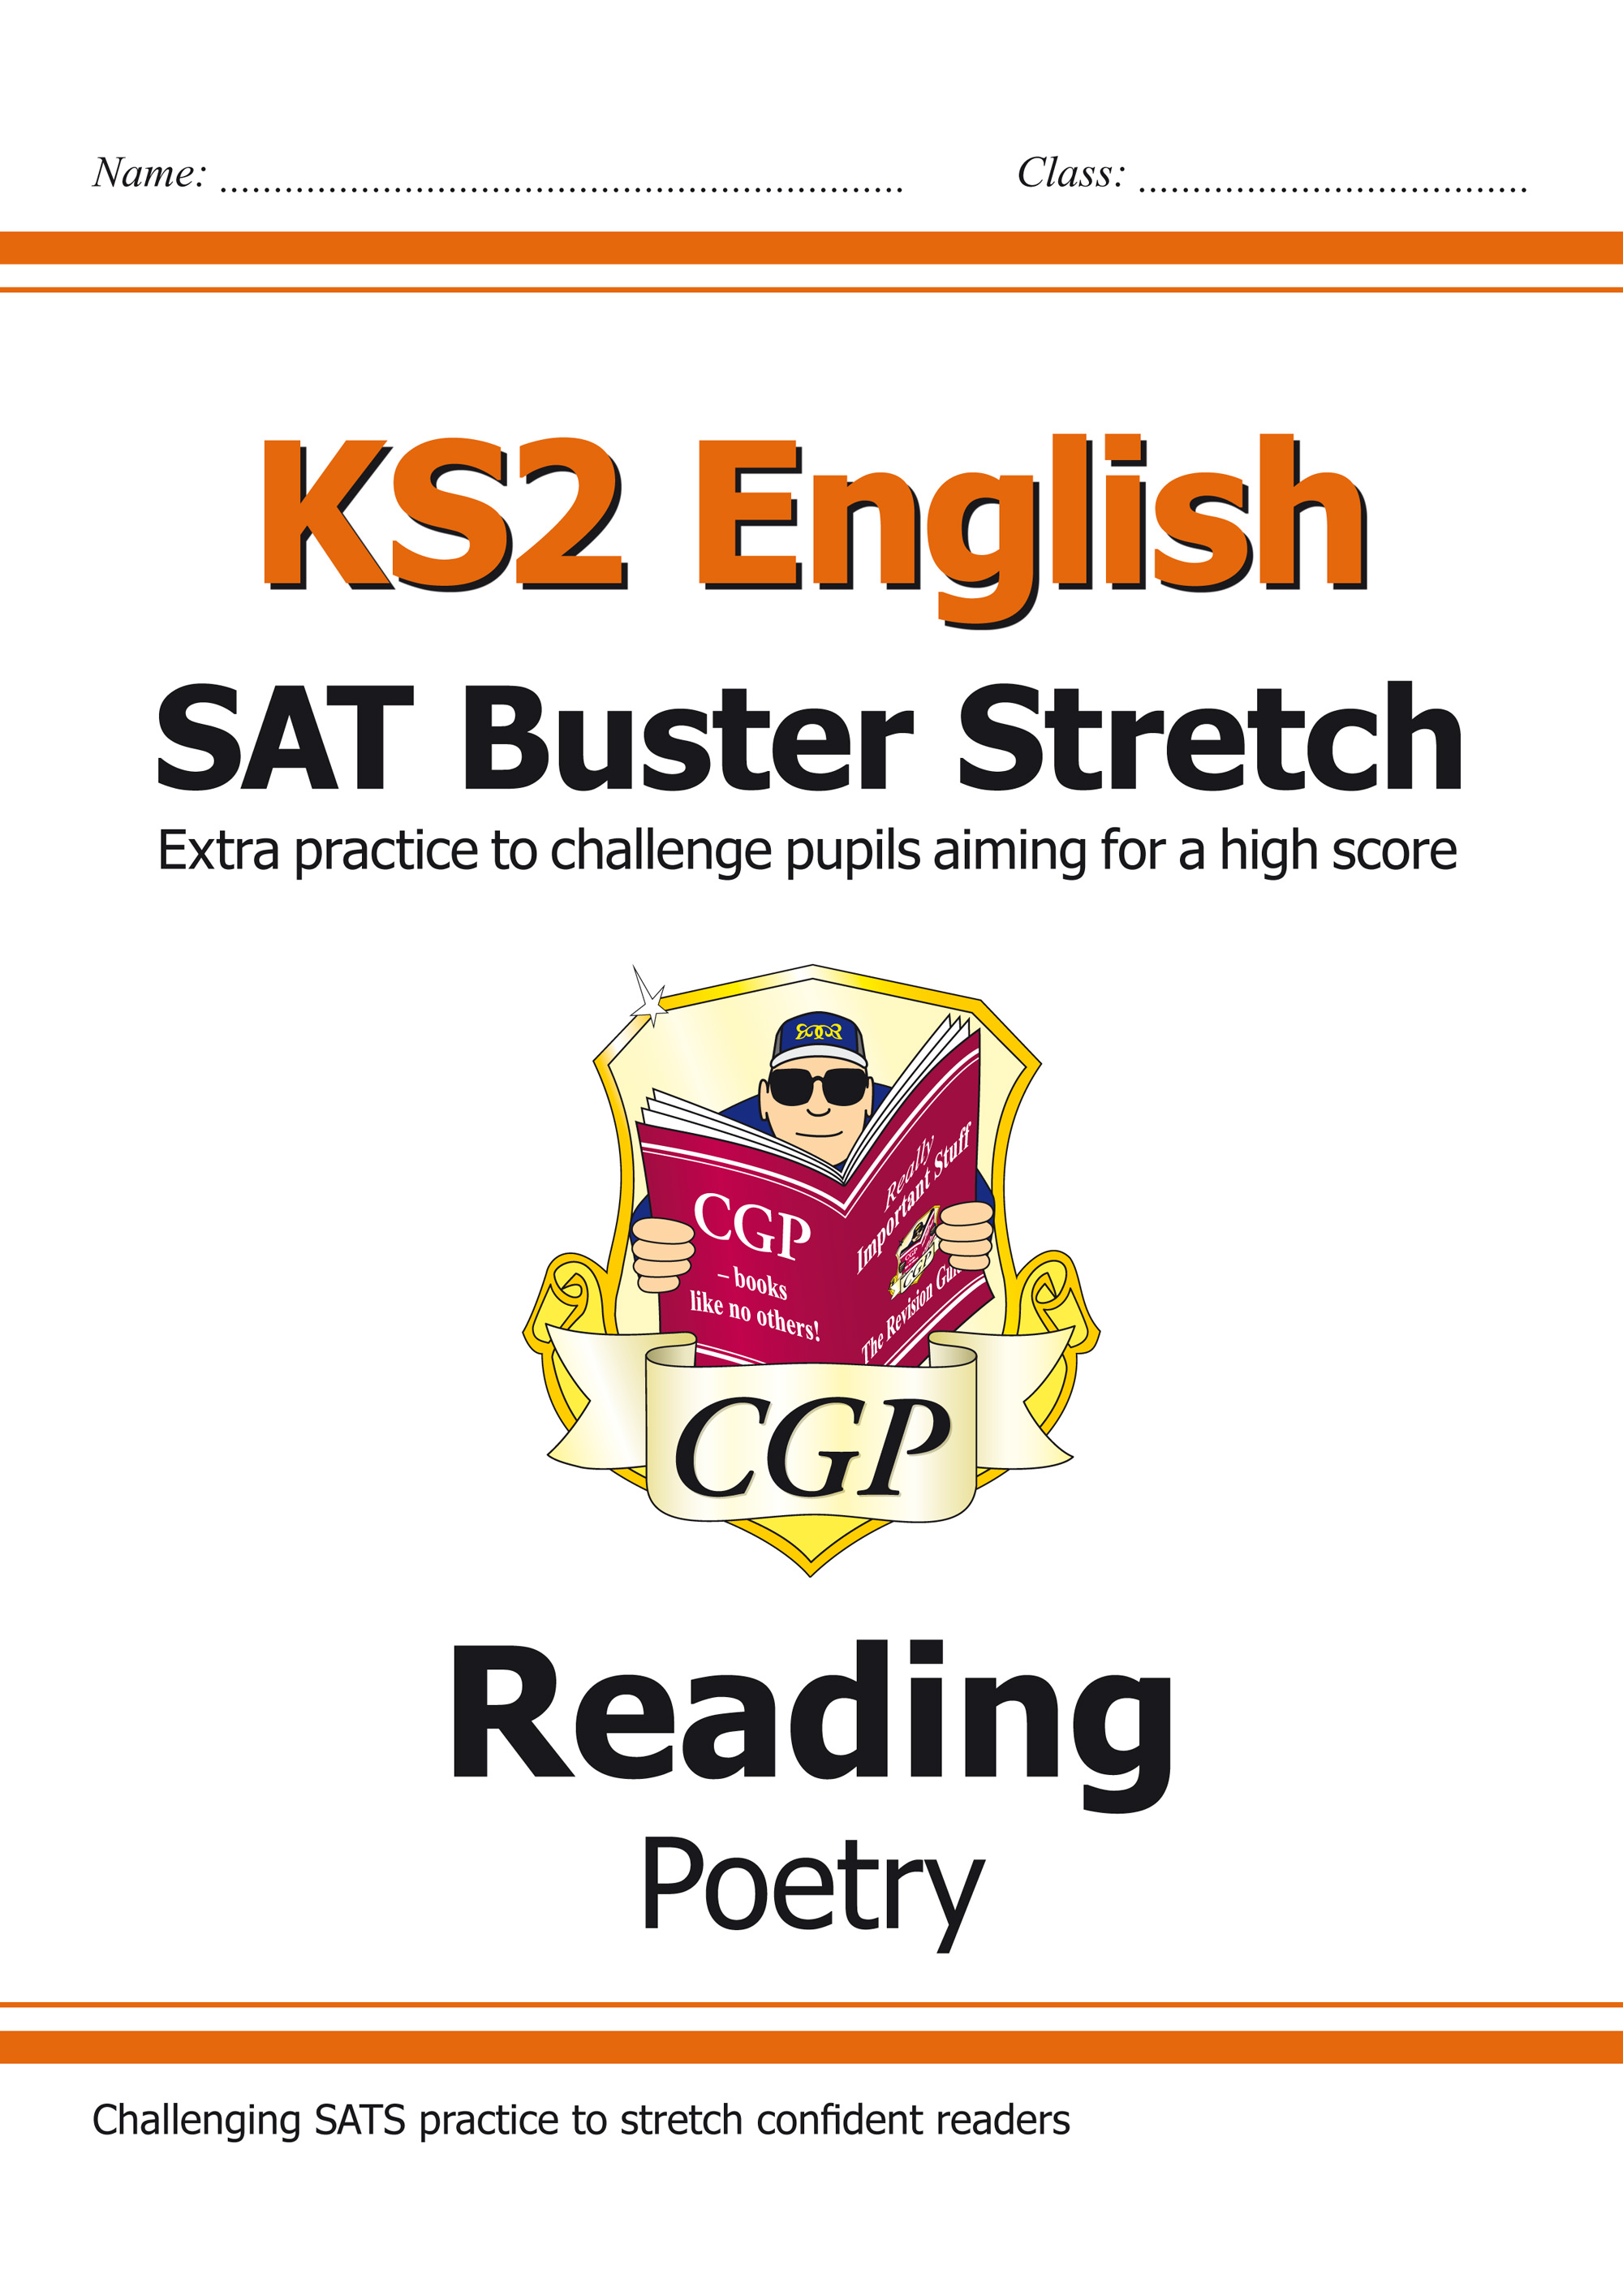 E6HRP21 - KS2 English Reading SAT Buster Stretch: Poetry (for the 2019 tests)